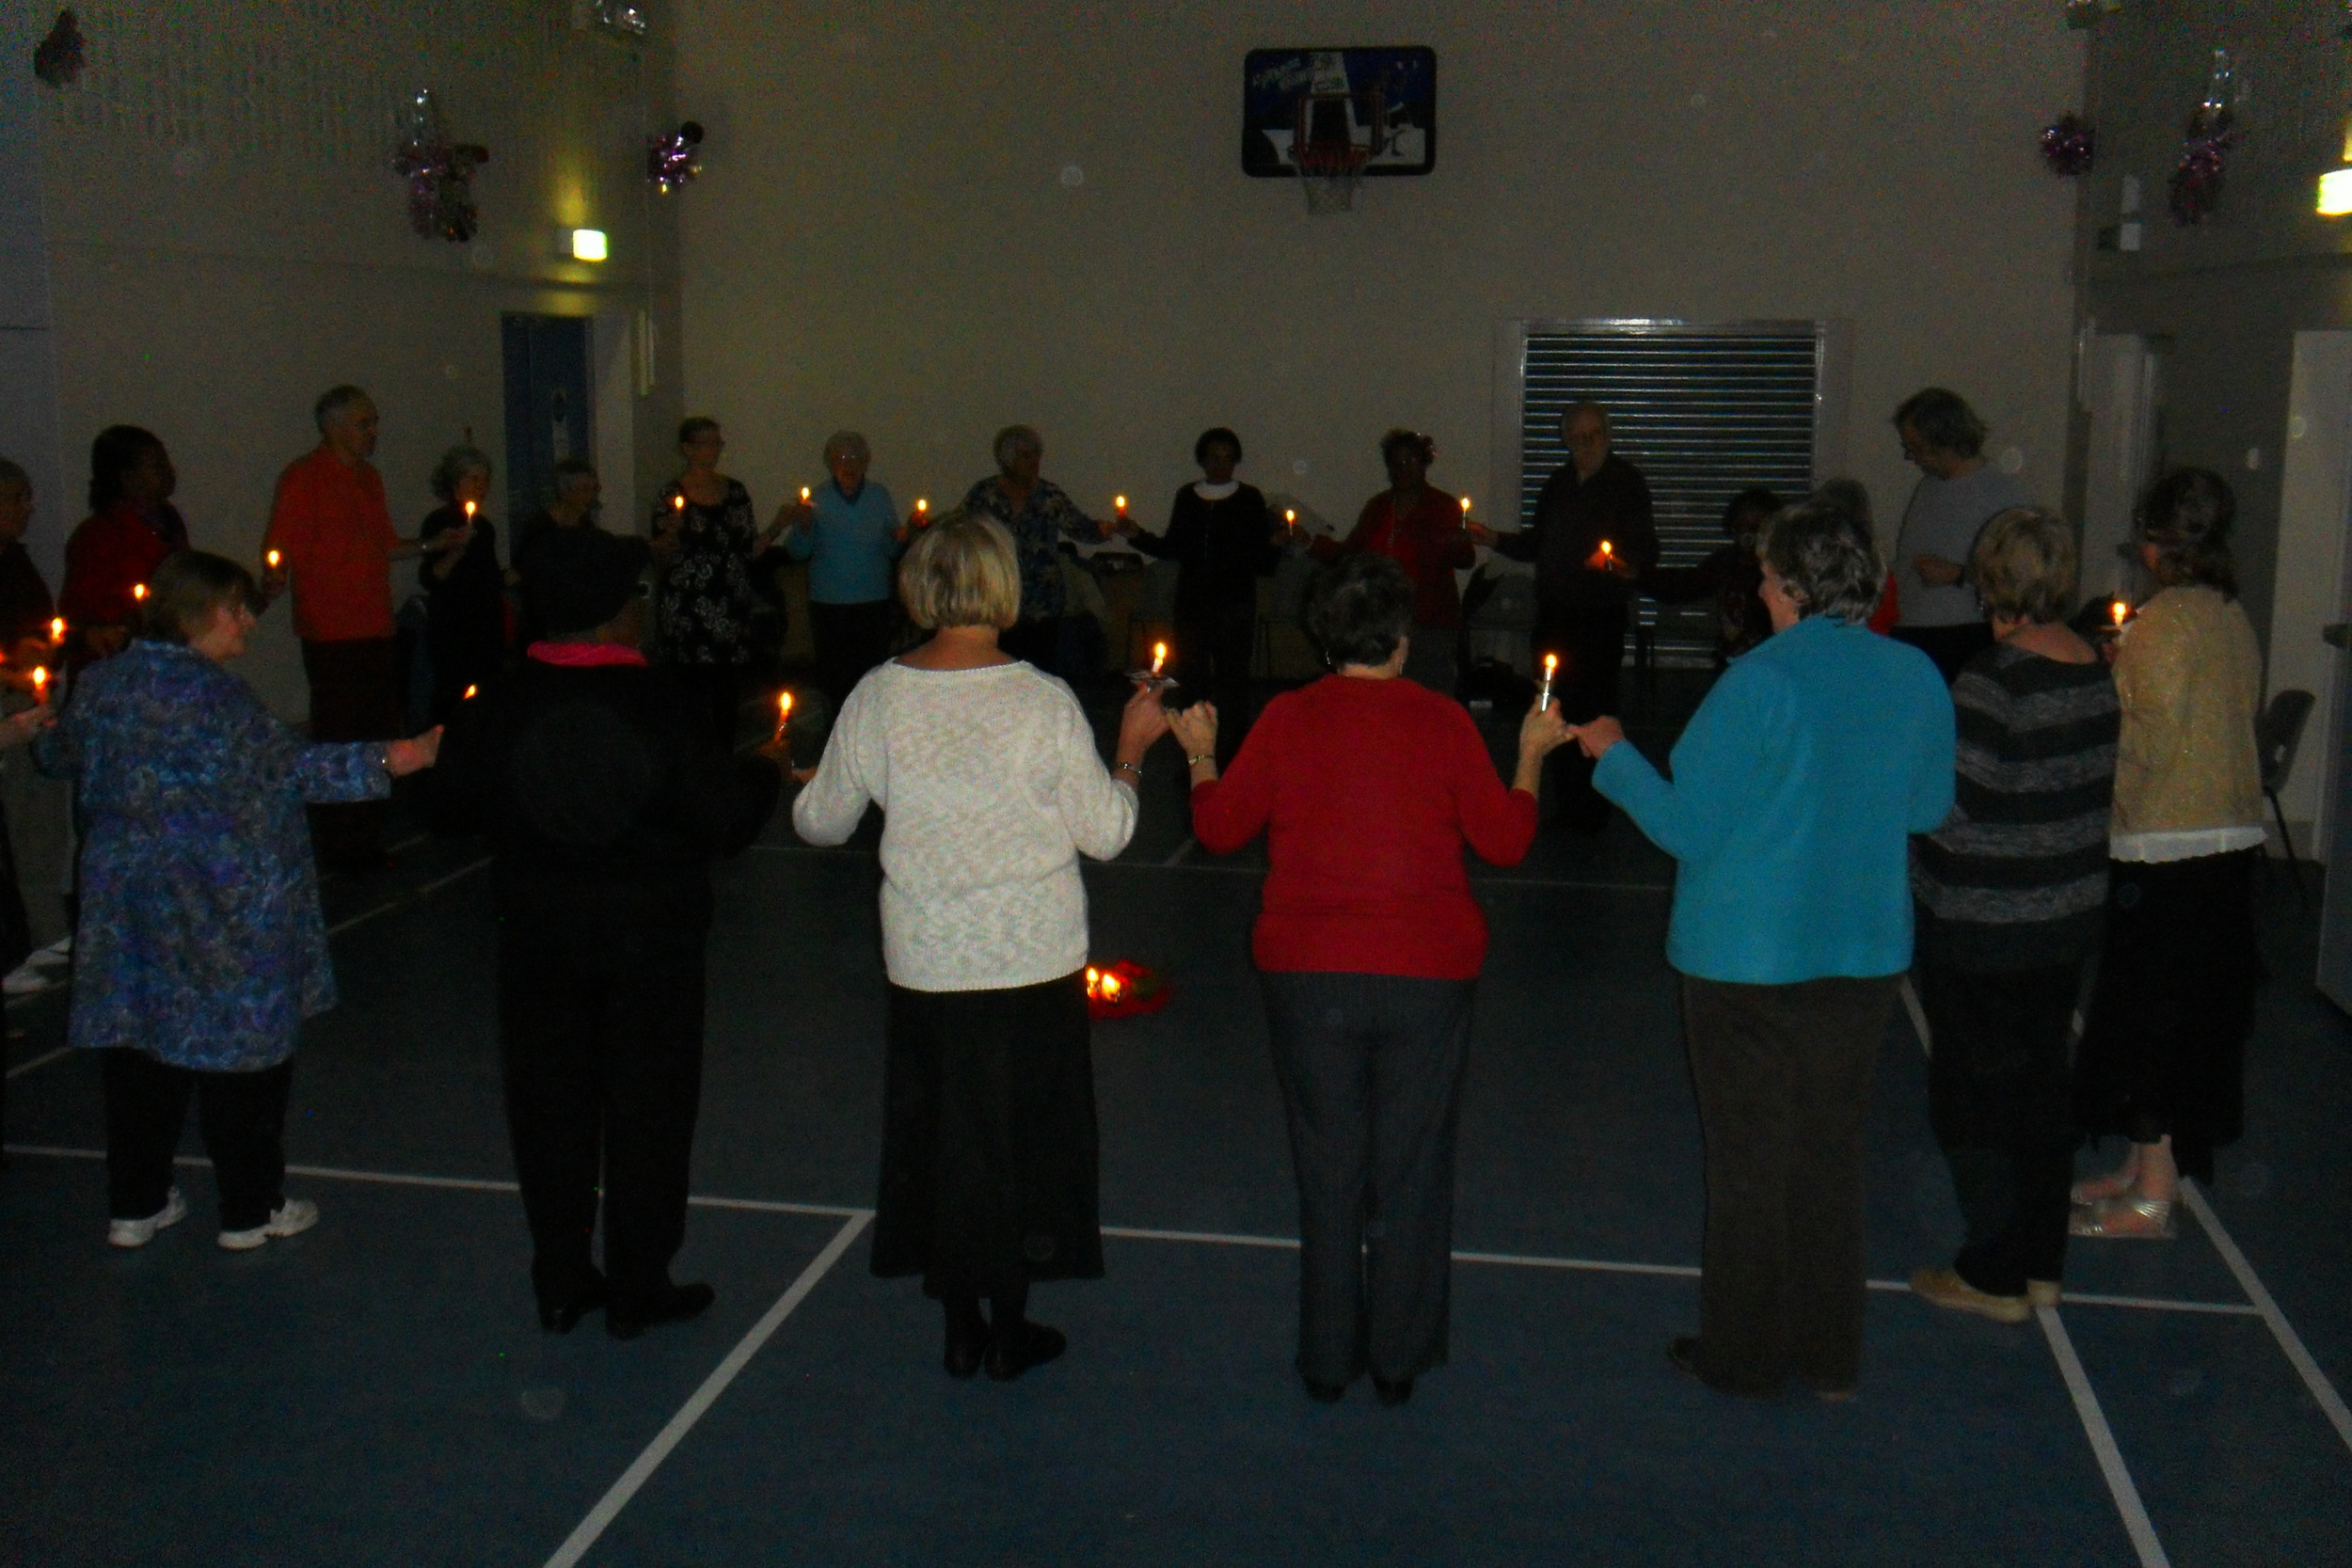 The Shepherd's Dance  - this is a traditional French Dance in which the dancers hold candles and mark out the shape of a star with their footwork as they progress